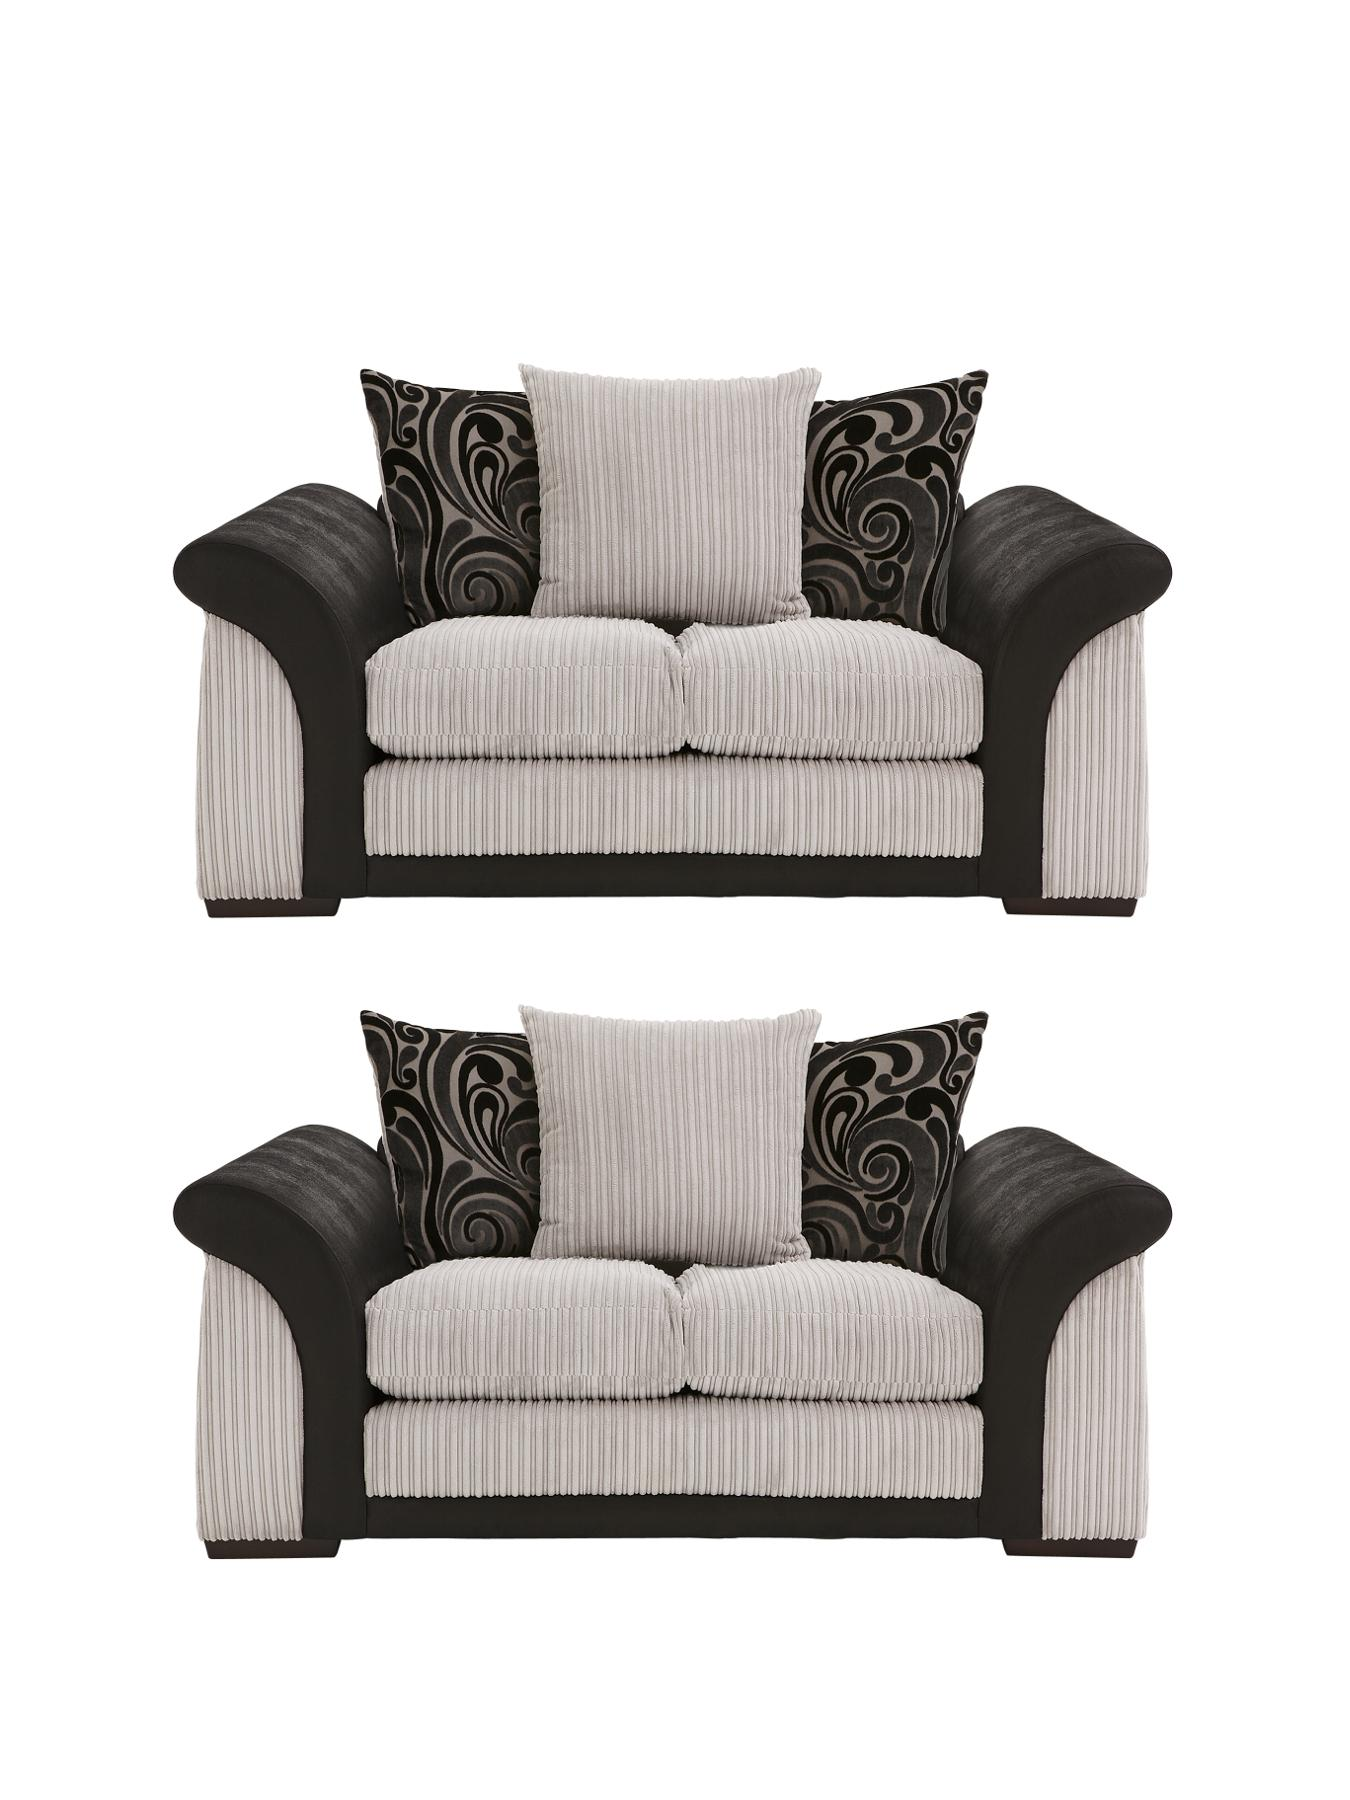 Large 4 seater sofa shop for cheap living room and save for Living room trackid sp 006